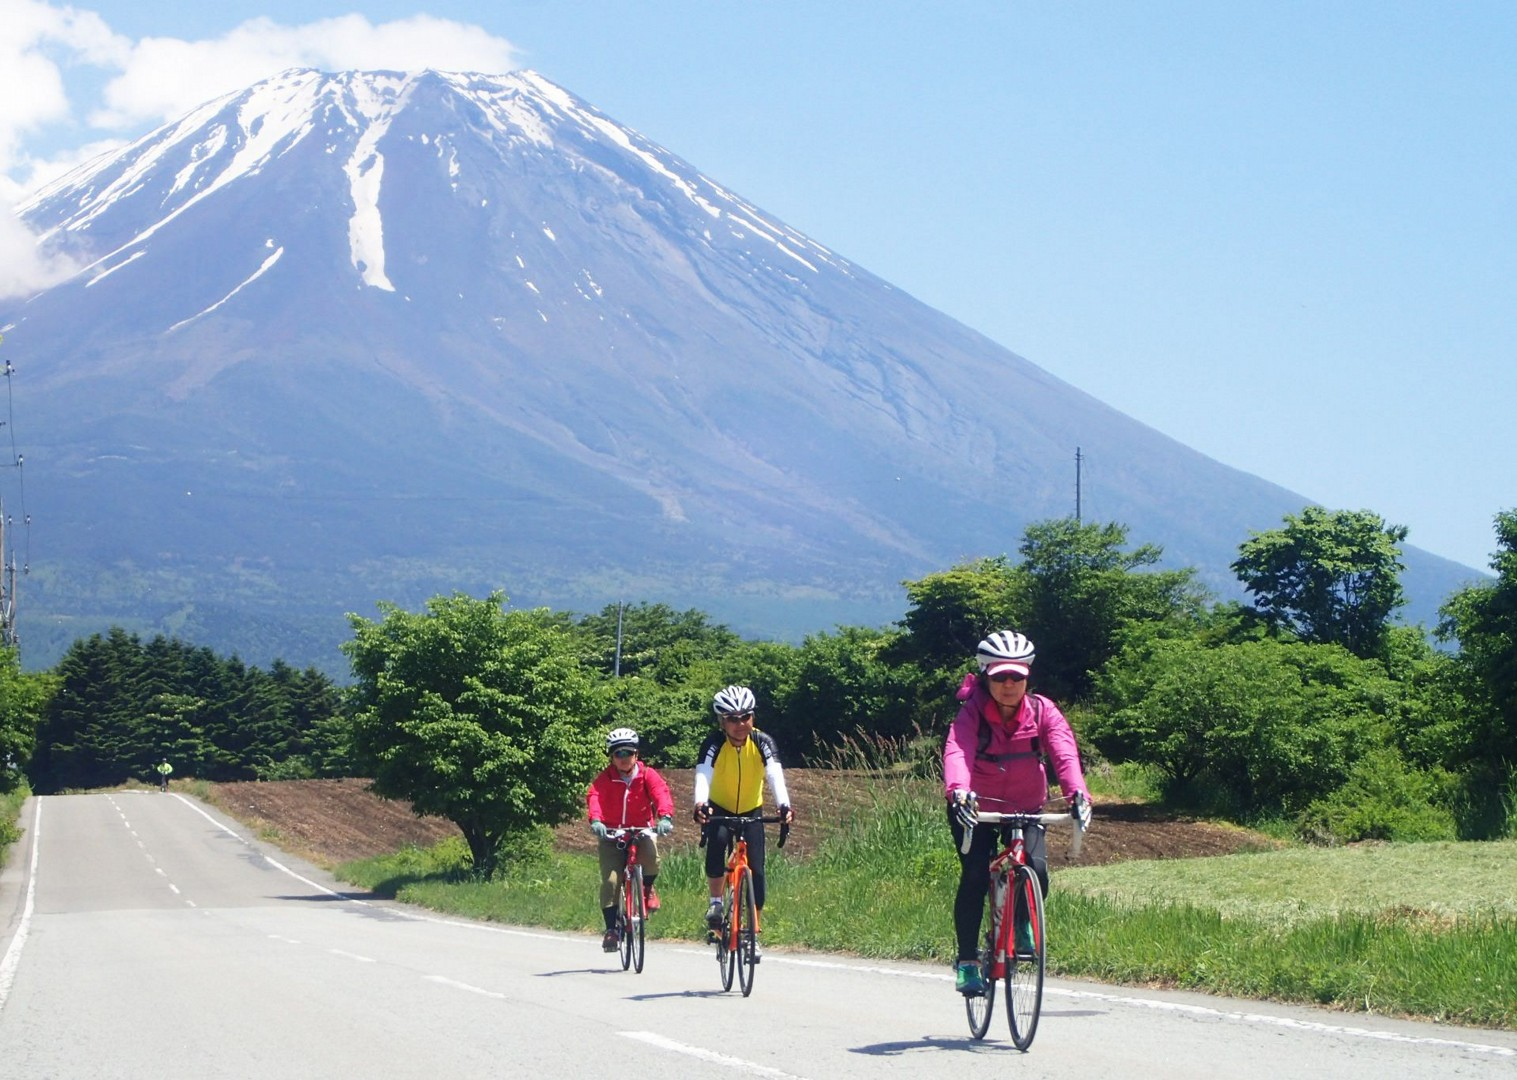 fuji day4 a.JPG - Japan - Classic Japan - Fuji to Kyoto - Cycling Holiday - Cycling Adventures